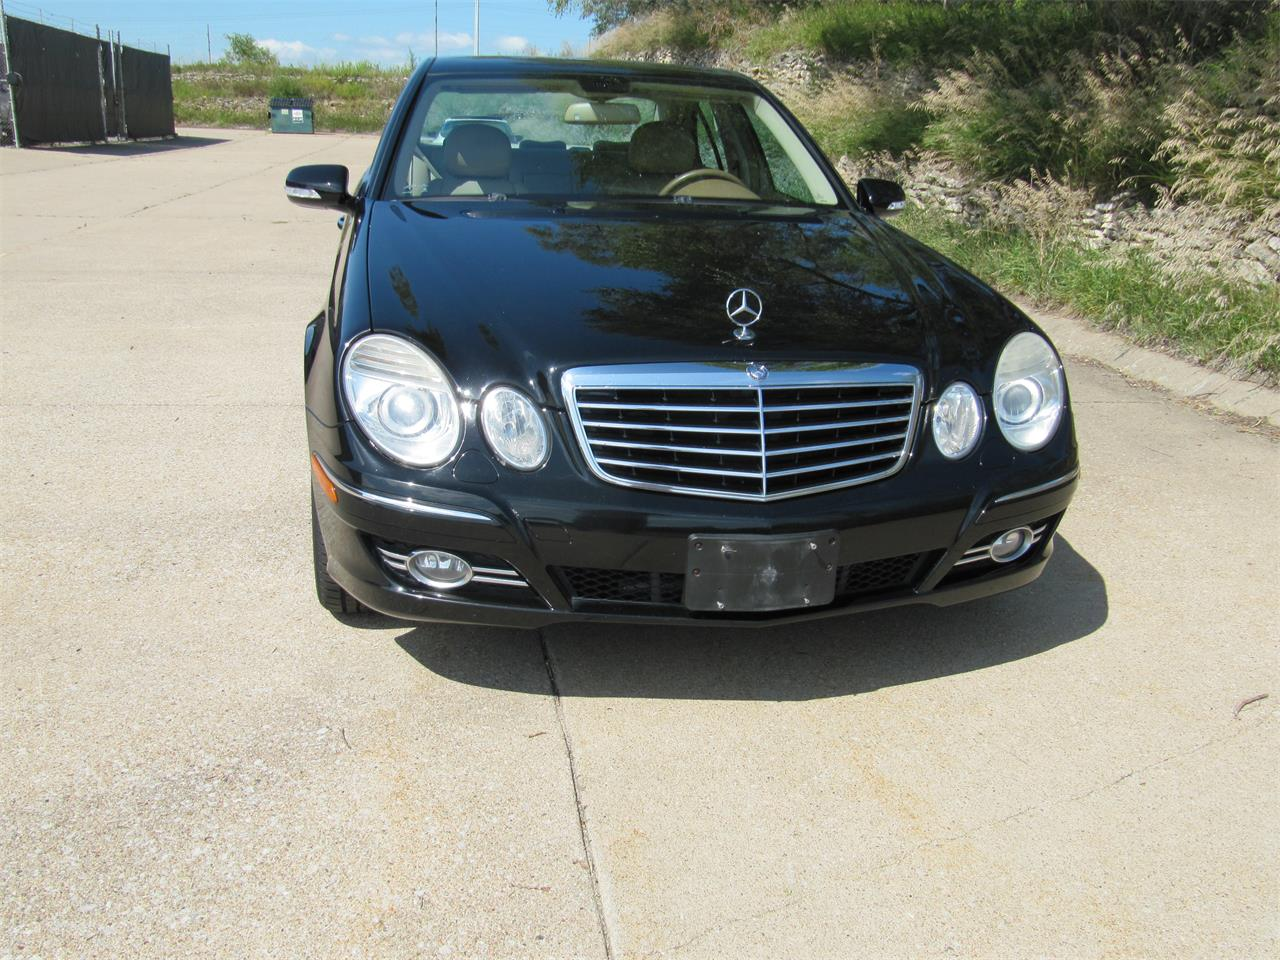 2008 Mercedes-Benz E350 (CC-1251706) for sale in Omaha, Nebraska